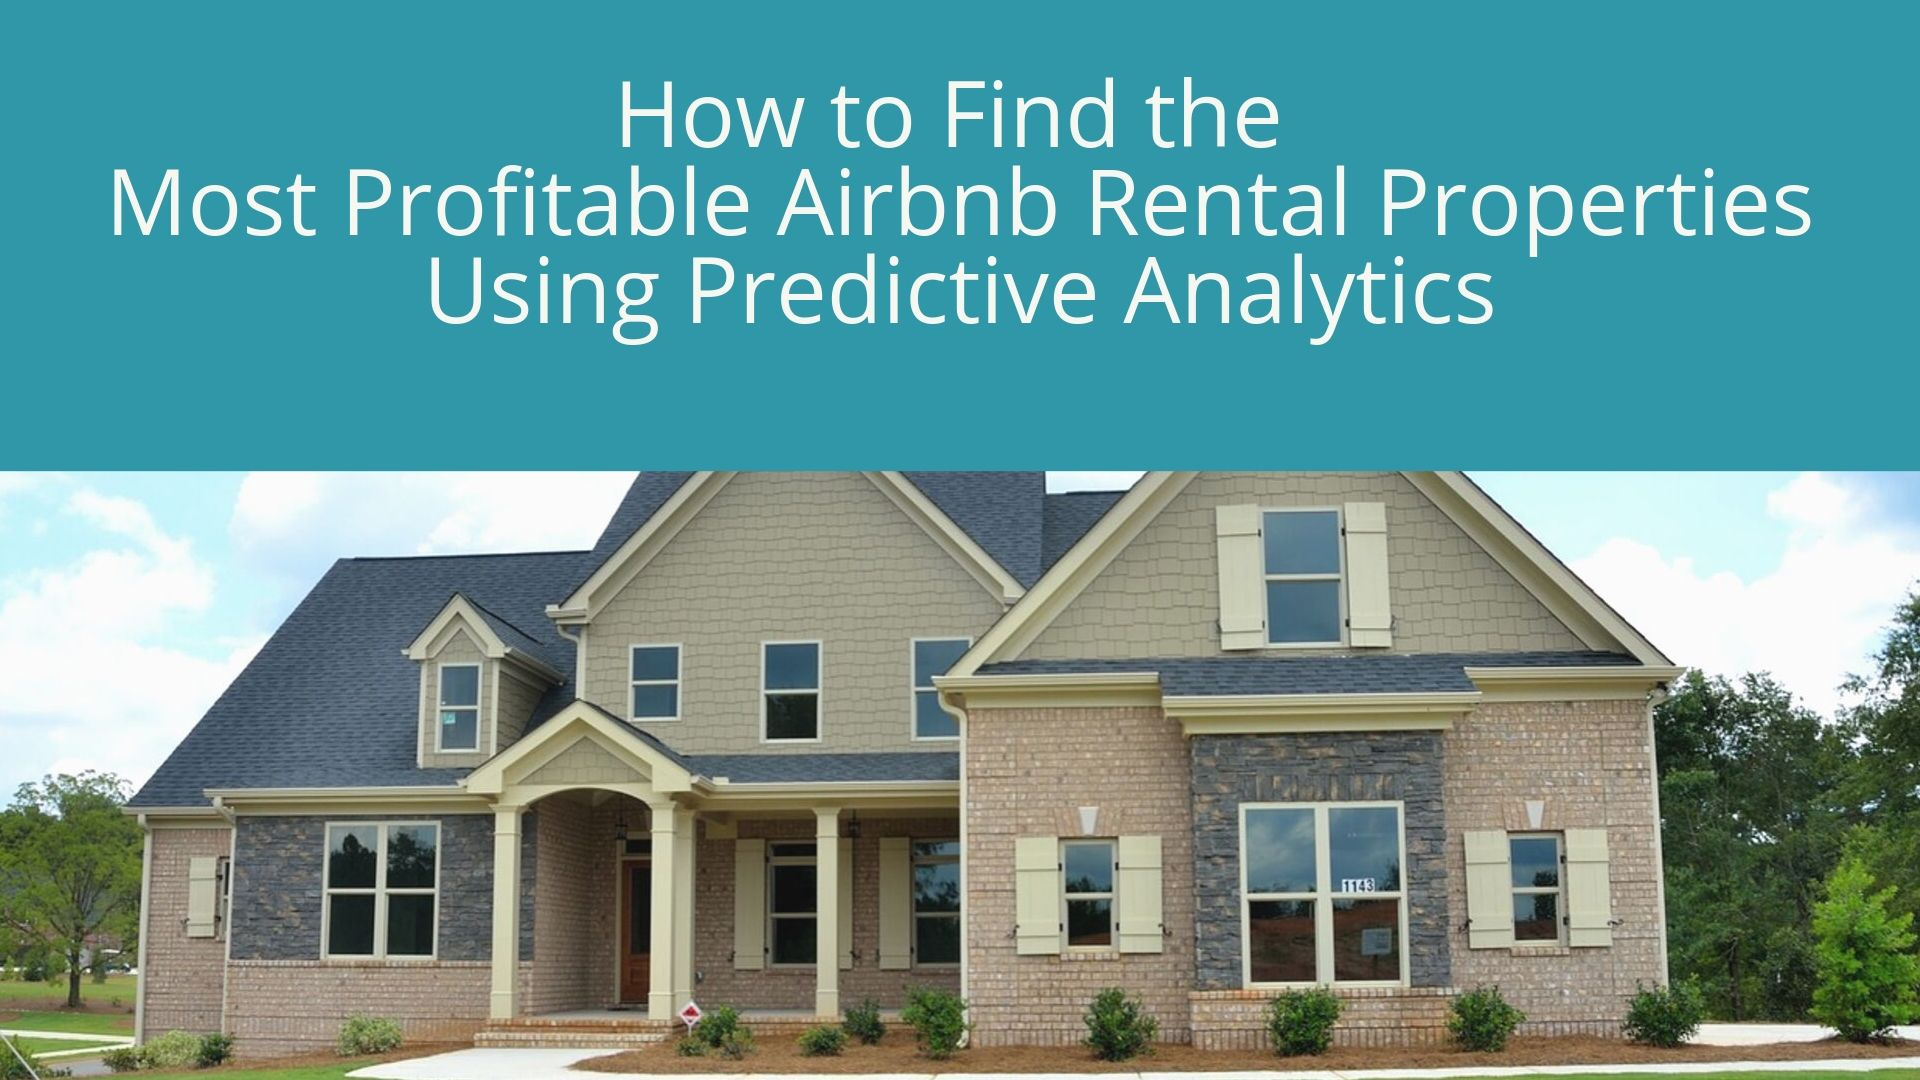 Find profitable Airbnb rentals